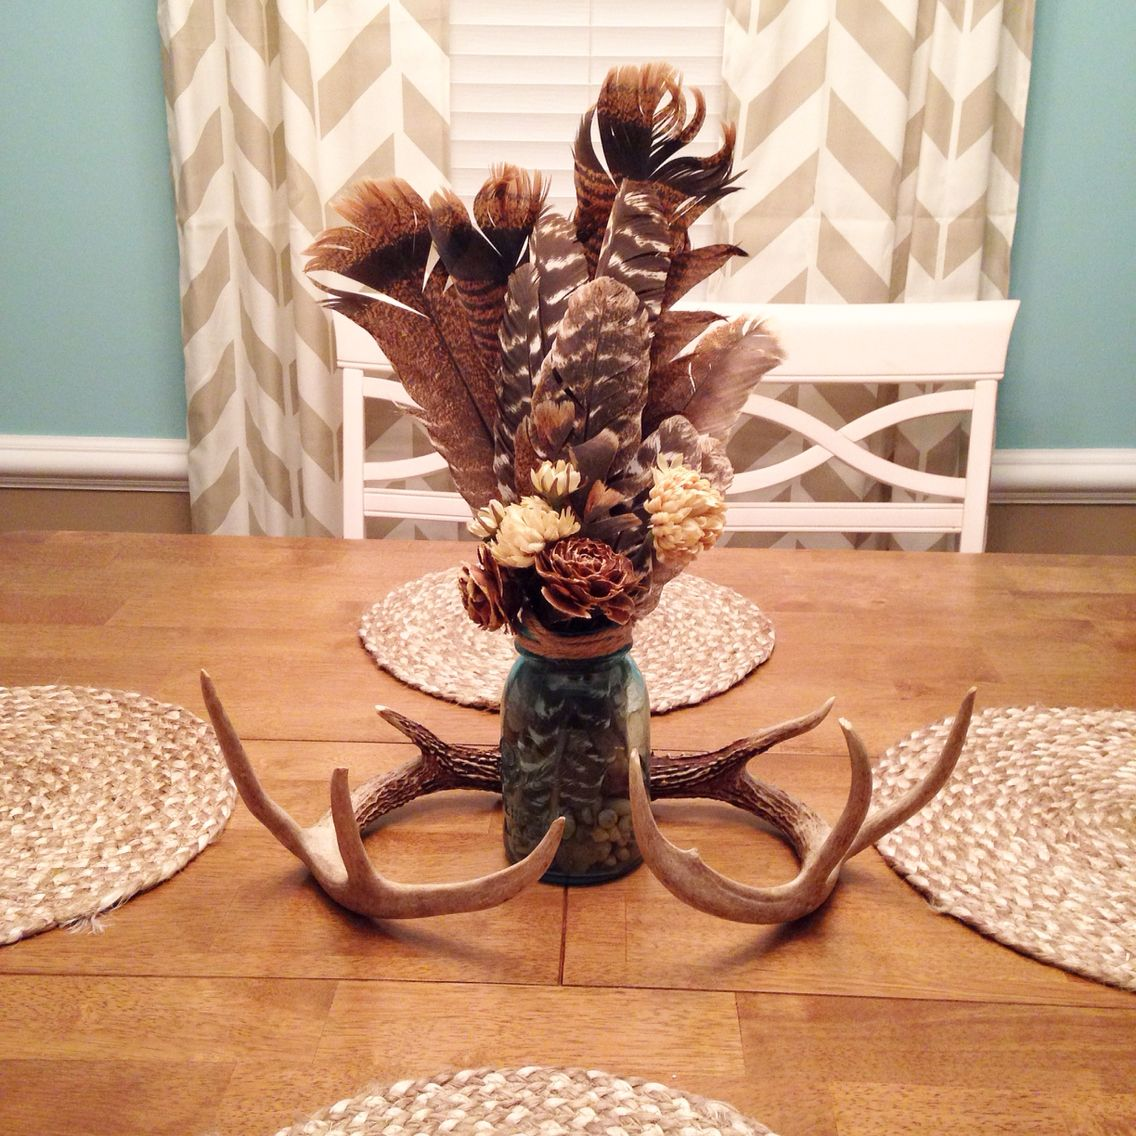 Charmant Rustic Dining Room Table Centerpiece. (Turkey Feathers U0026 Deer Antlers) Antler  Centerpiece,